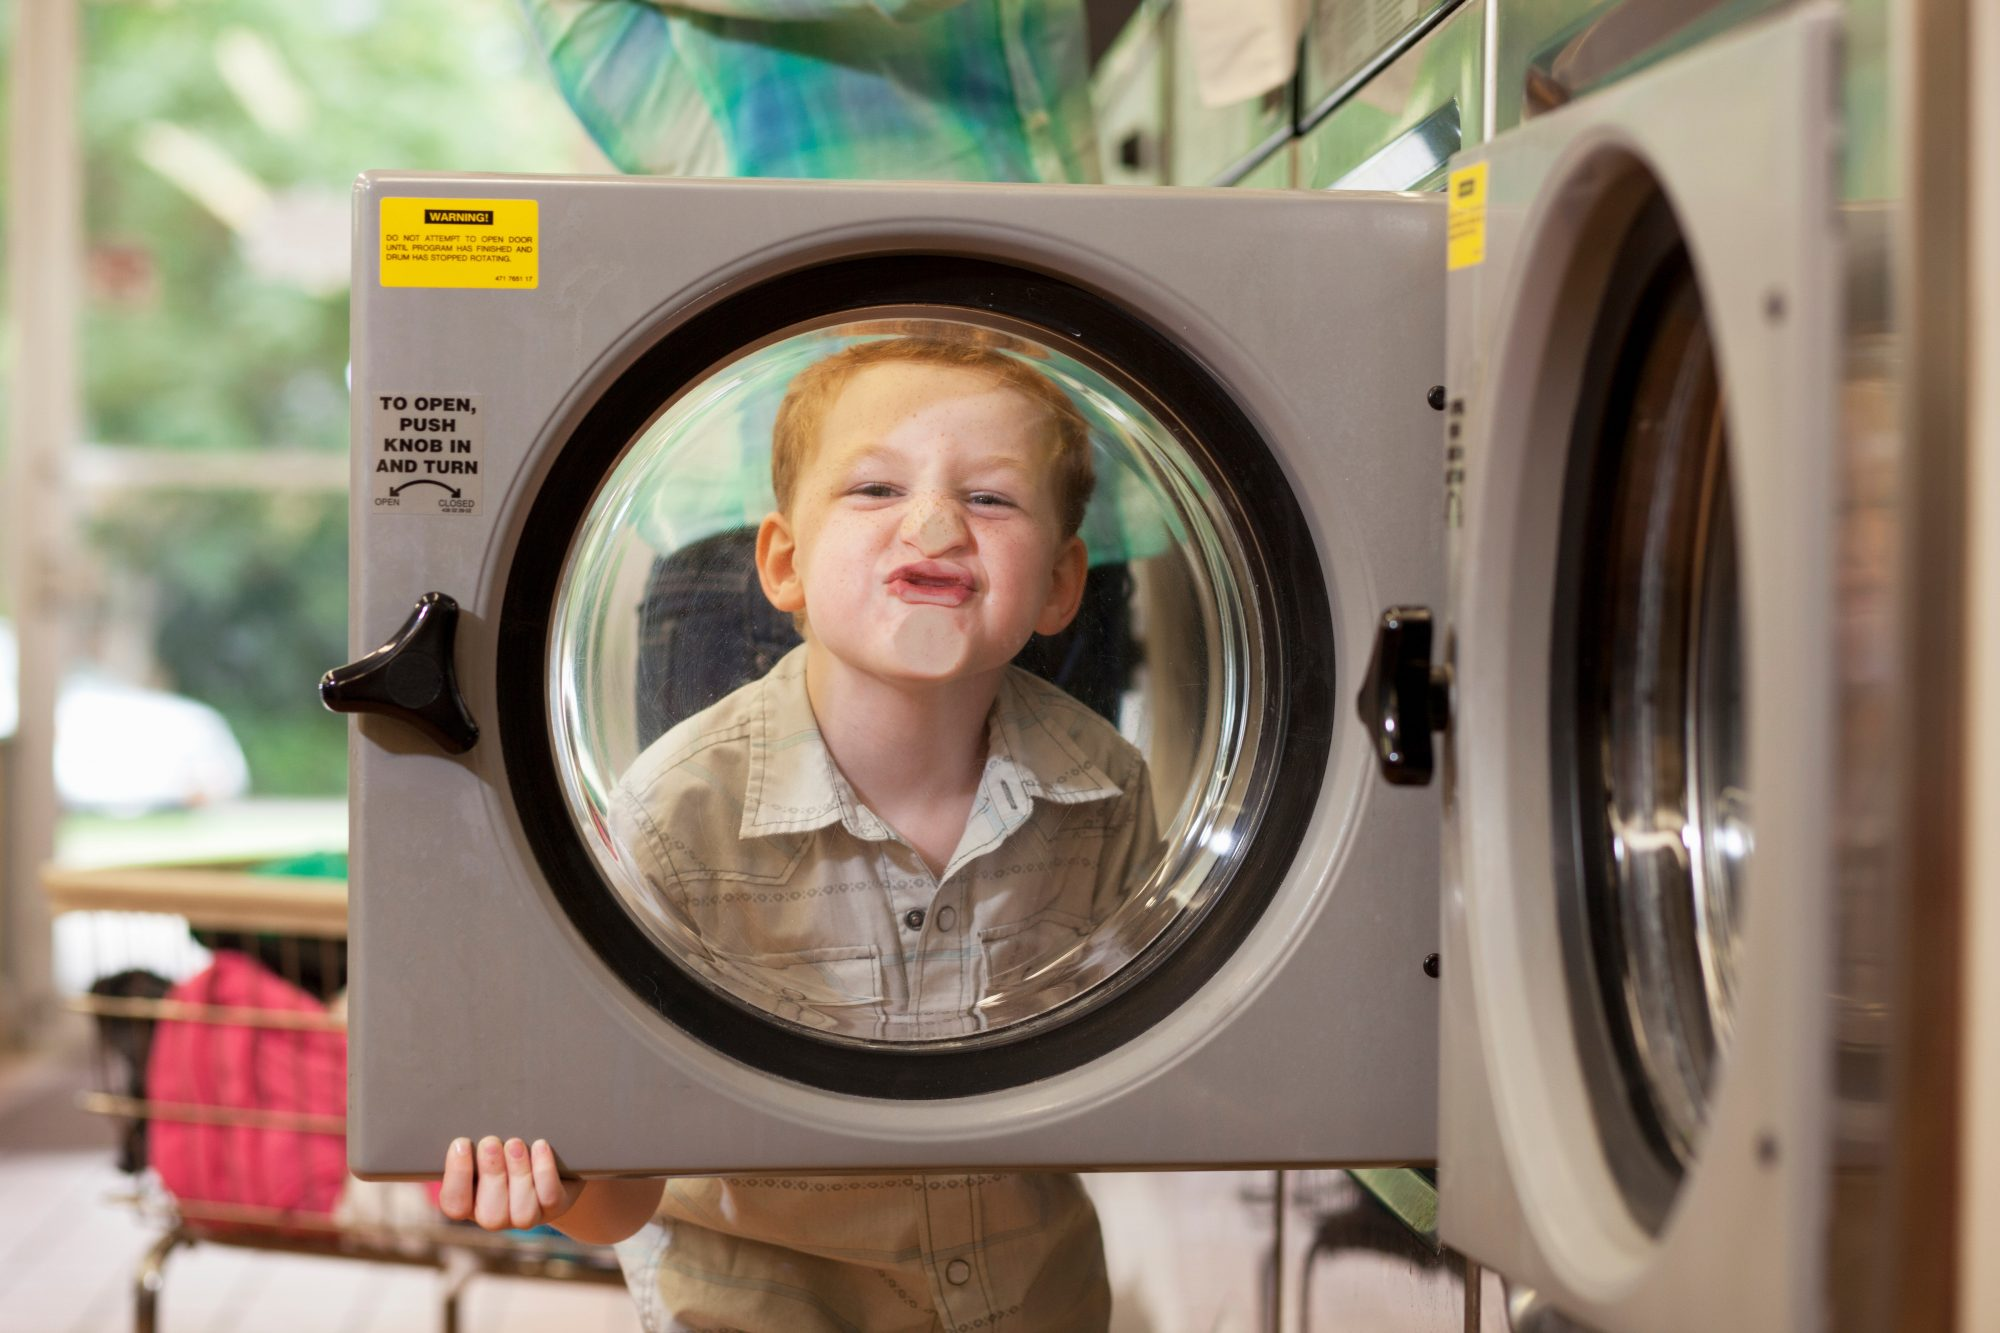 little boy in washing machine door